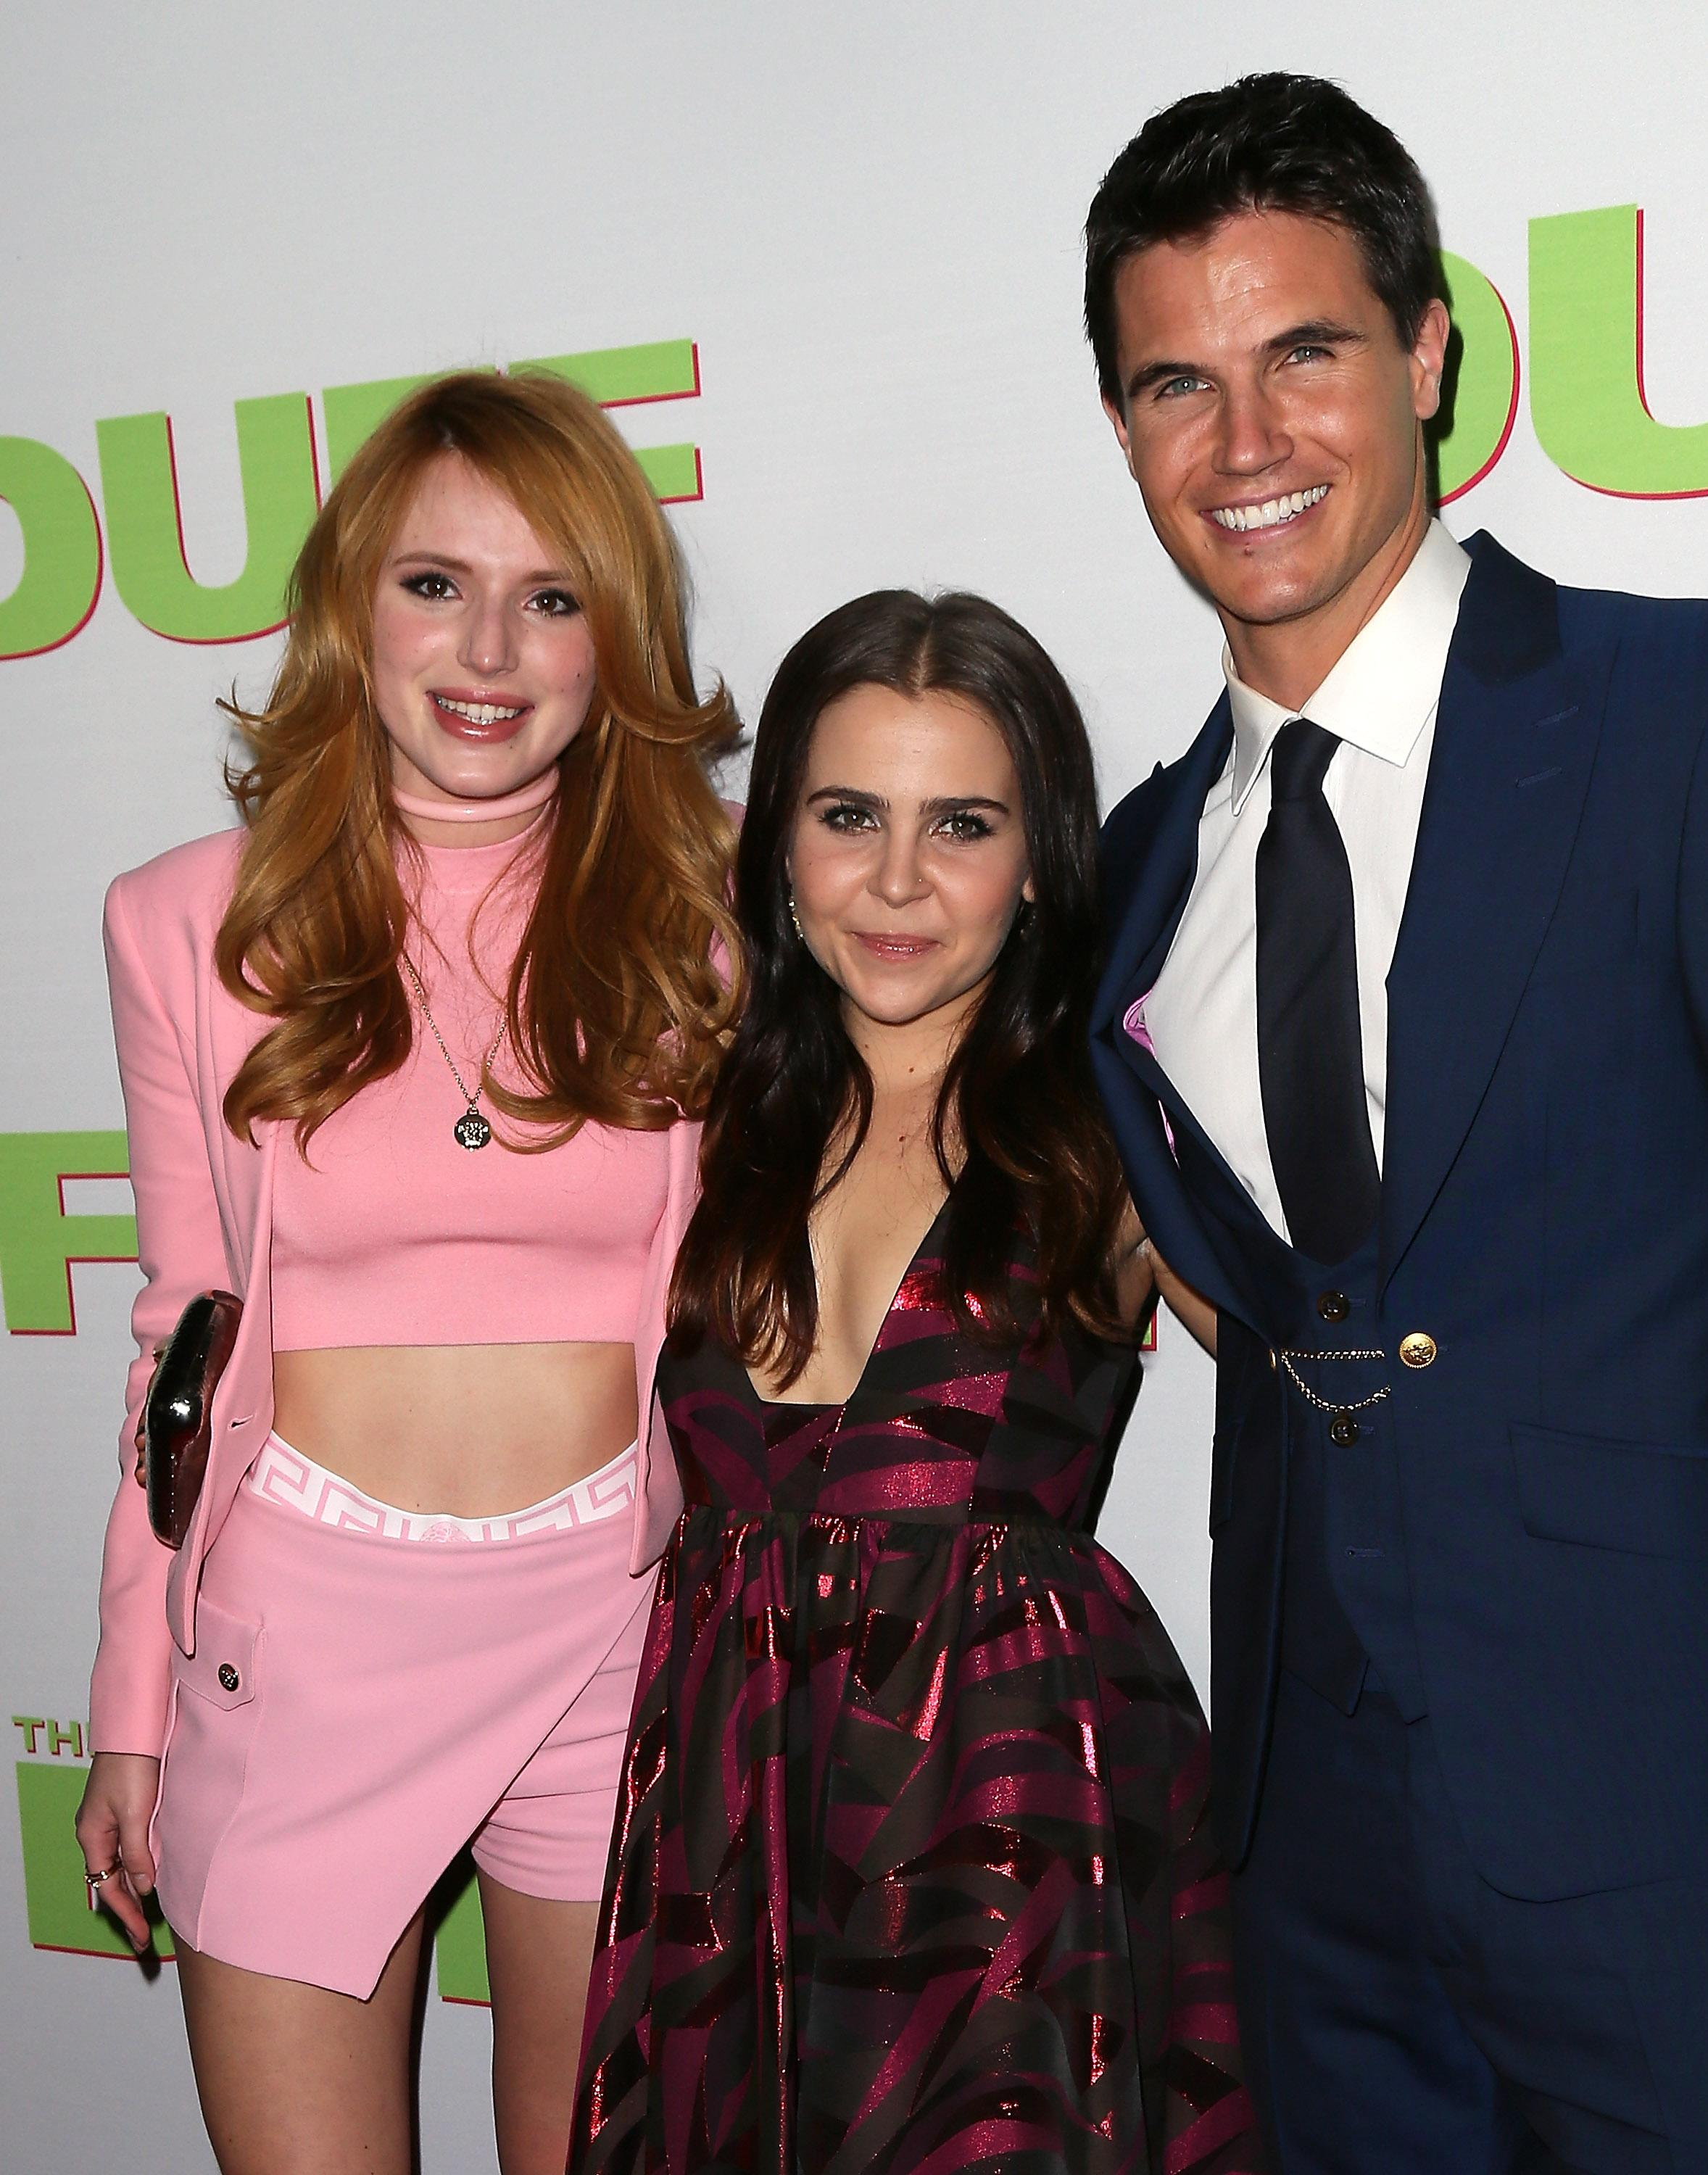 How 'The Duff' Used Social Media, YouTube Stars to Rally Teen Girls